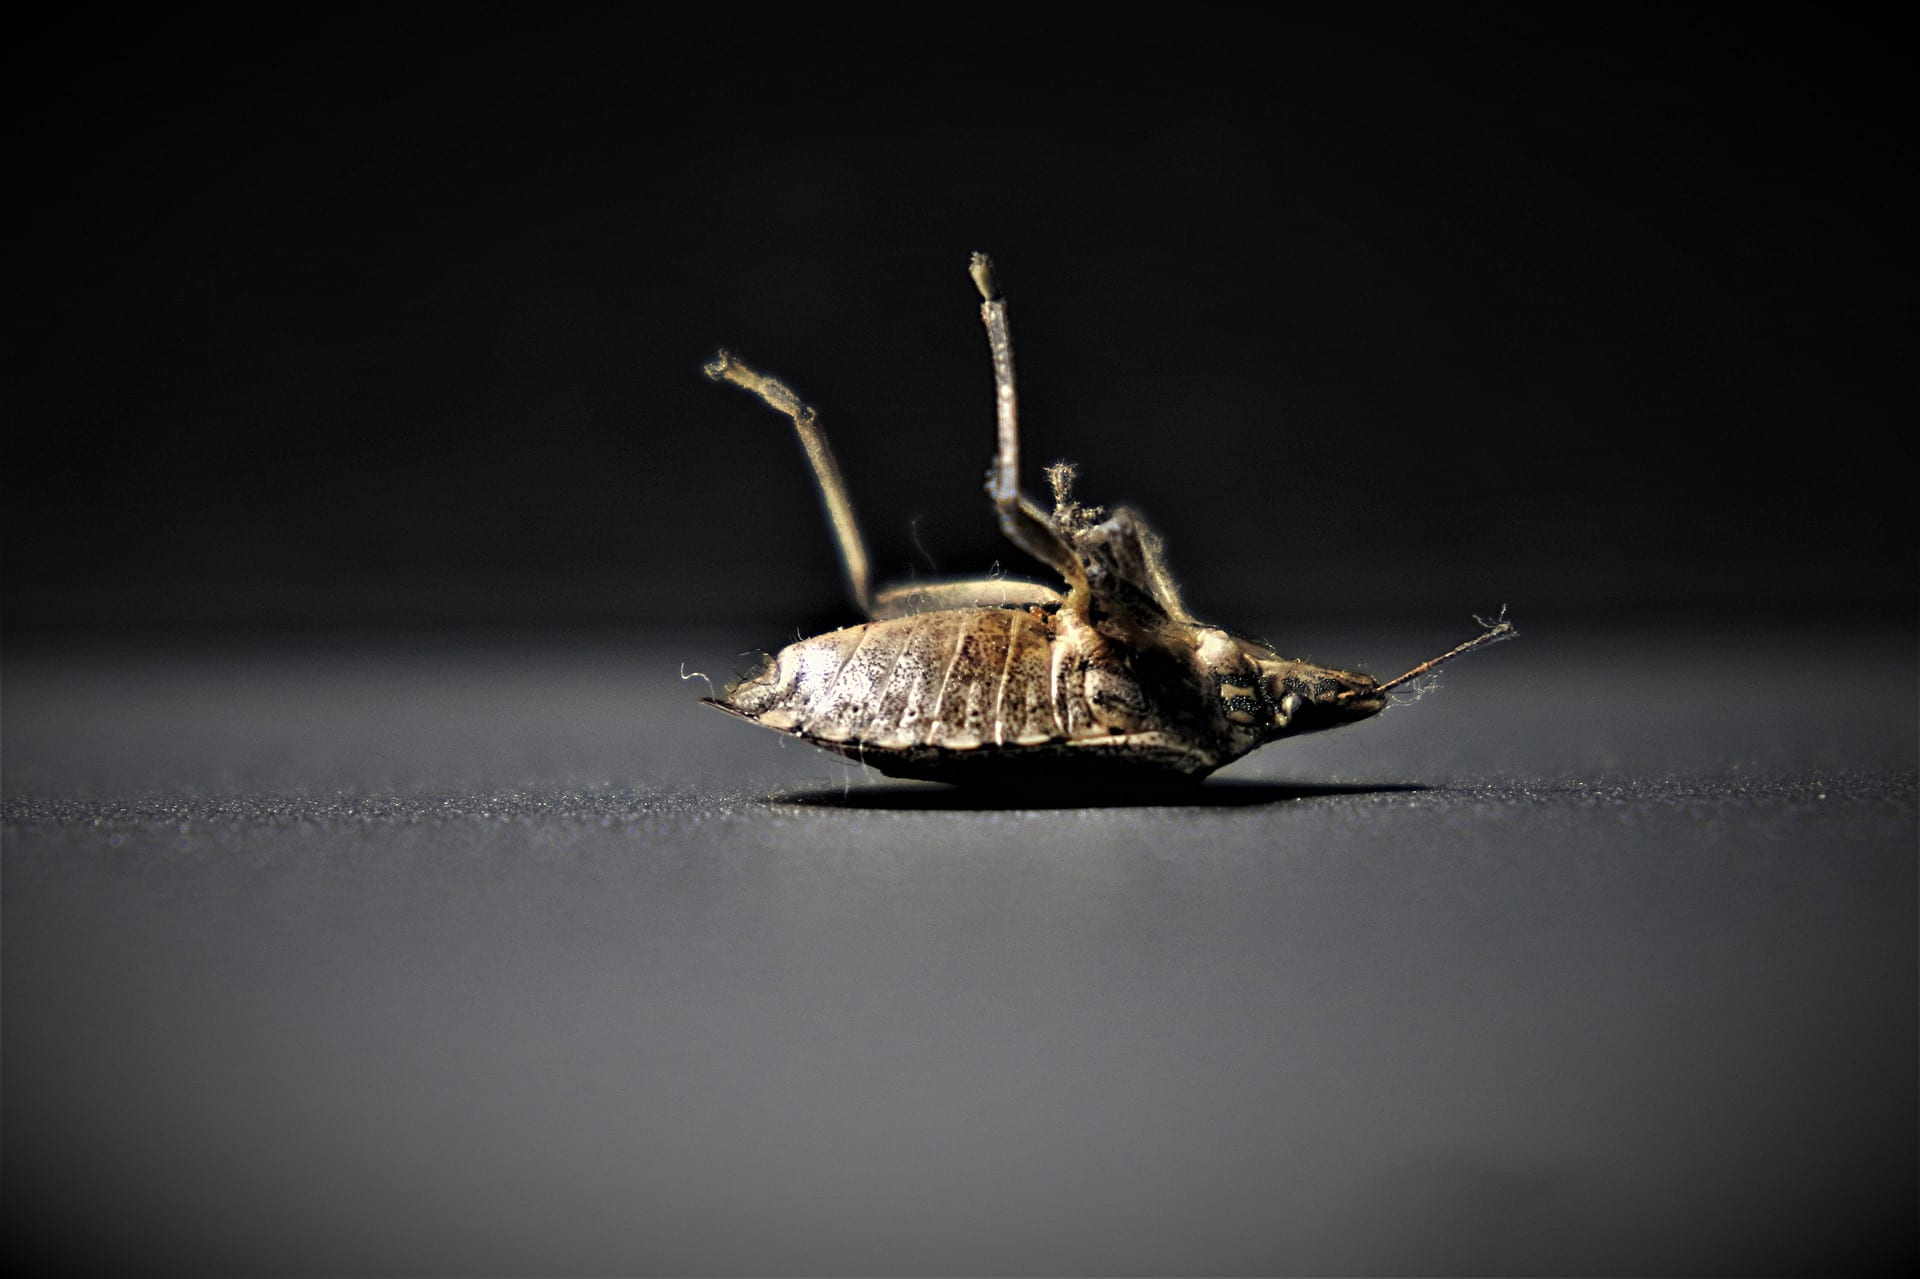 Dead bed bug lying on its back